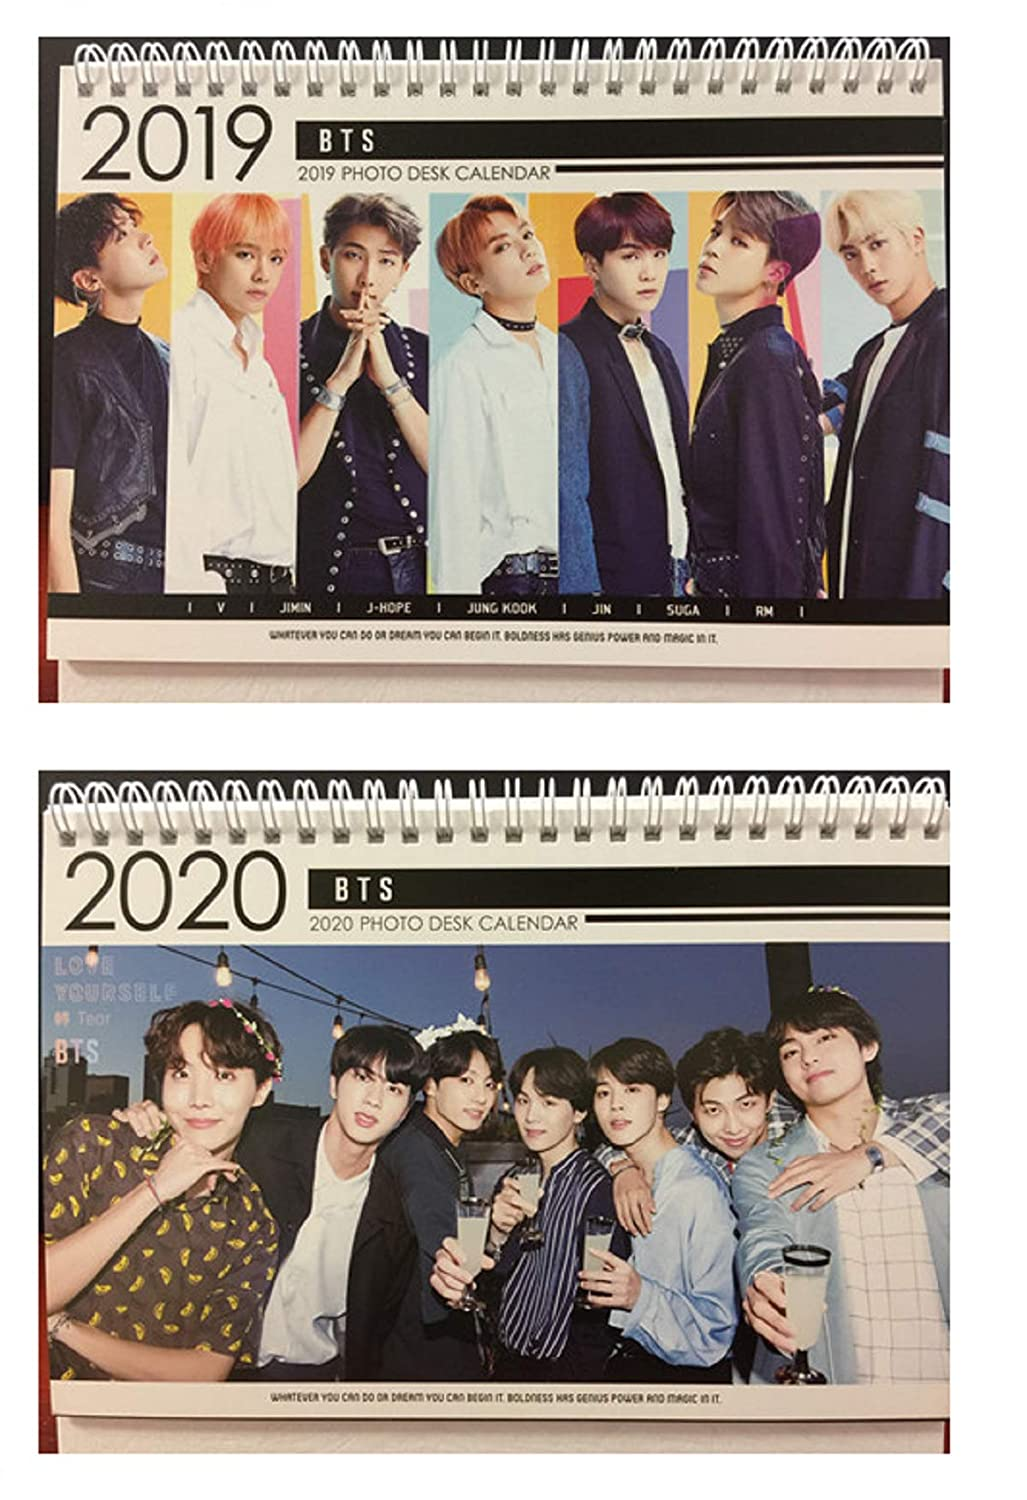 Unt Calendar 2020 Amazon.: Kpop BTS Bangtan Boys 2019 & 2020 Photo Desk Calendar